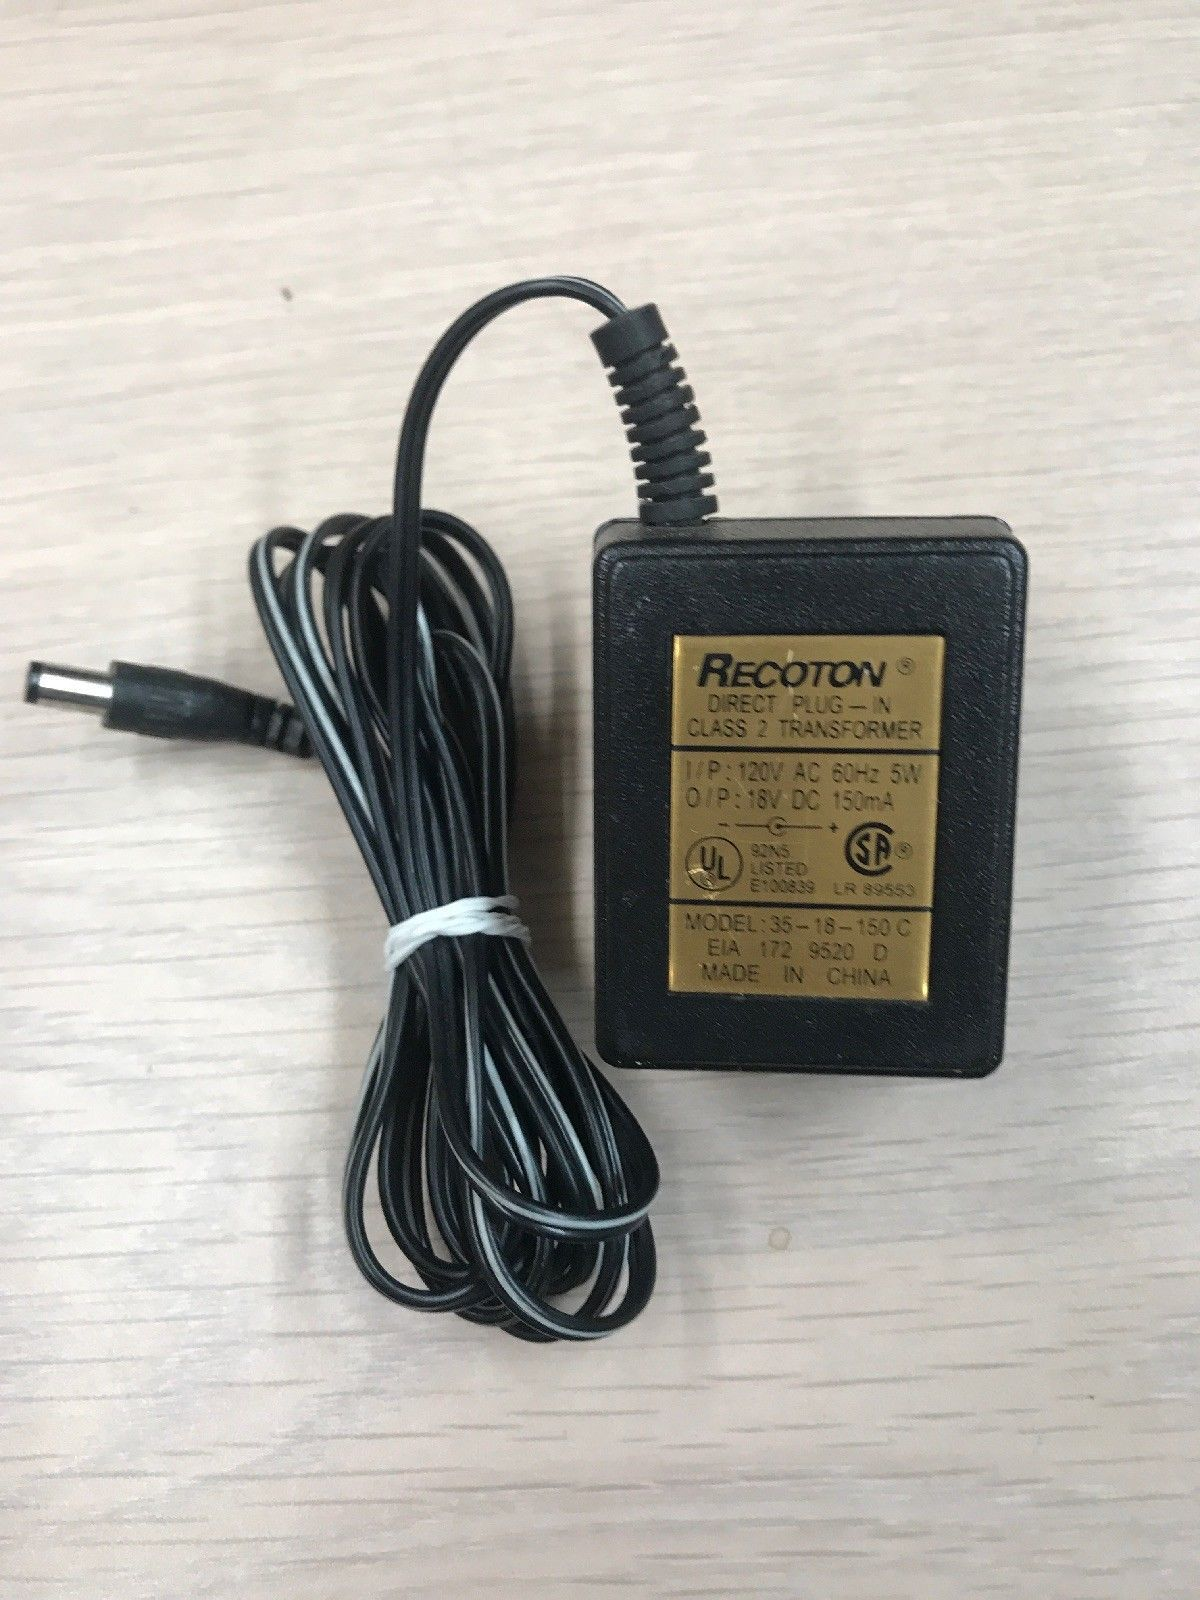 Recoton 35-18-150 C AC Power Supply Adapter 18V DC 150mA -Tested-           (E5)